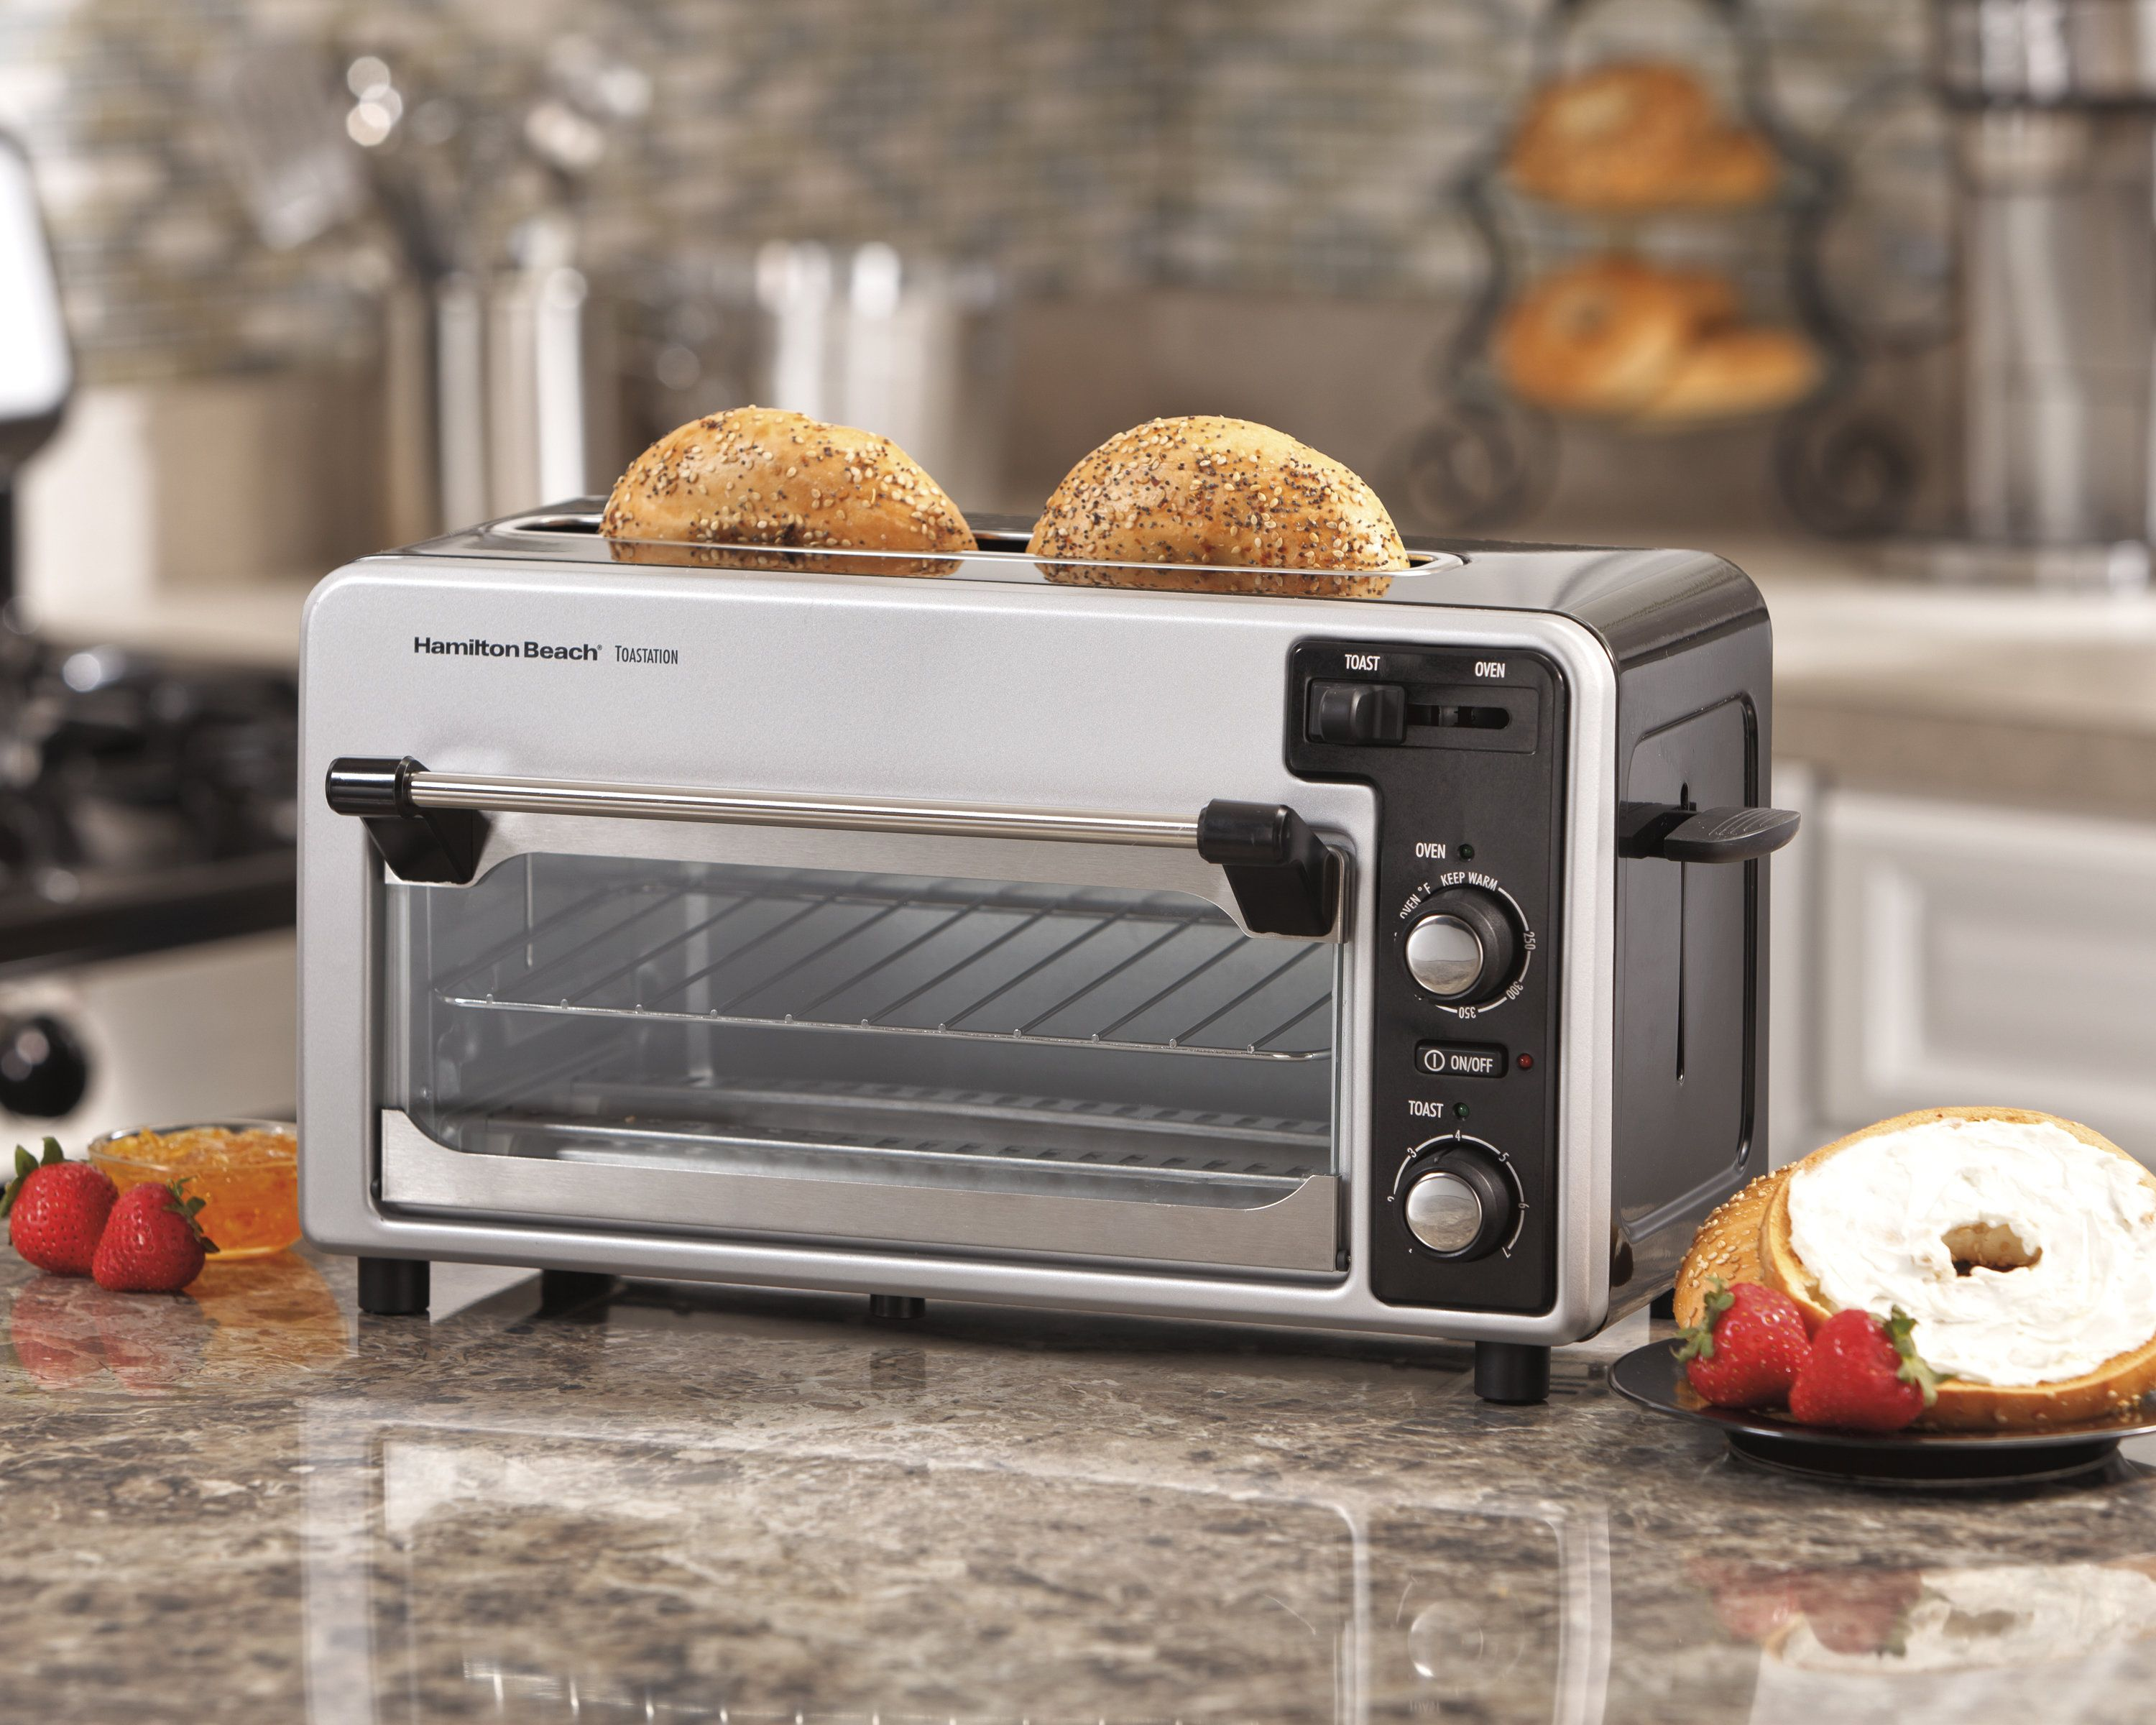 Toastation Combination Toaster Oven Small Oven Small Toaster